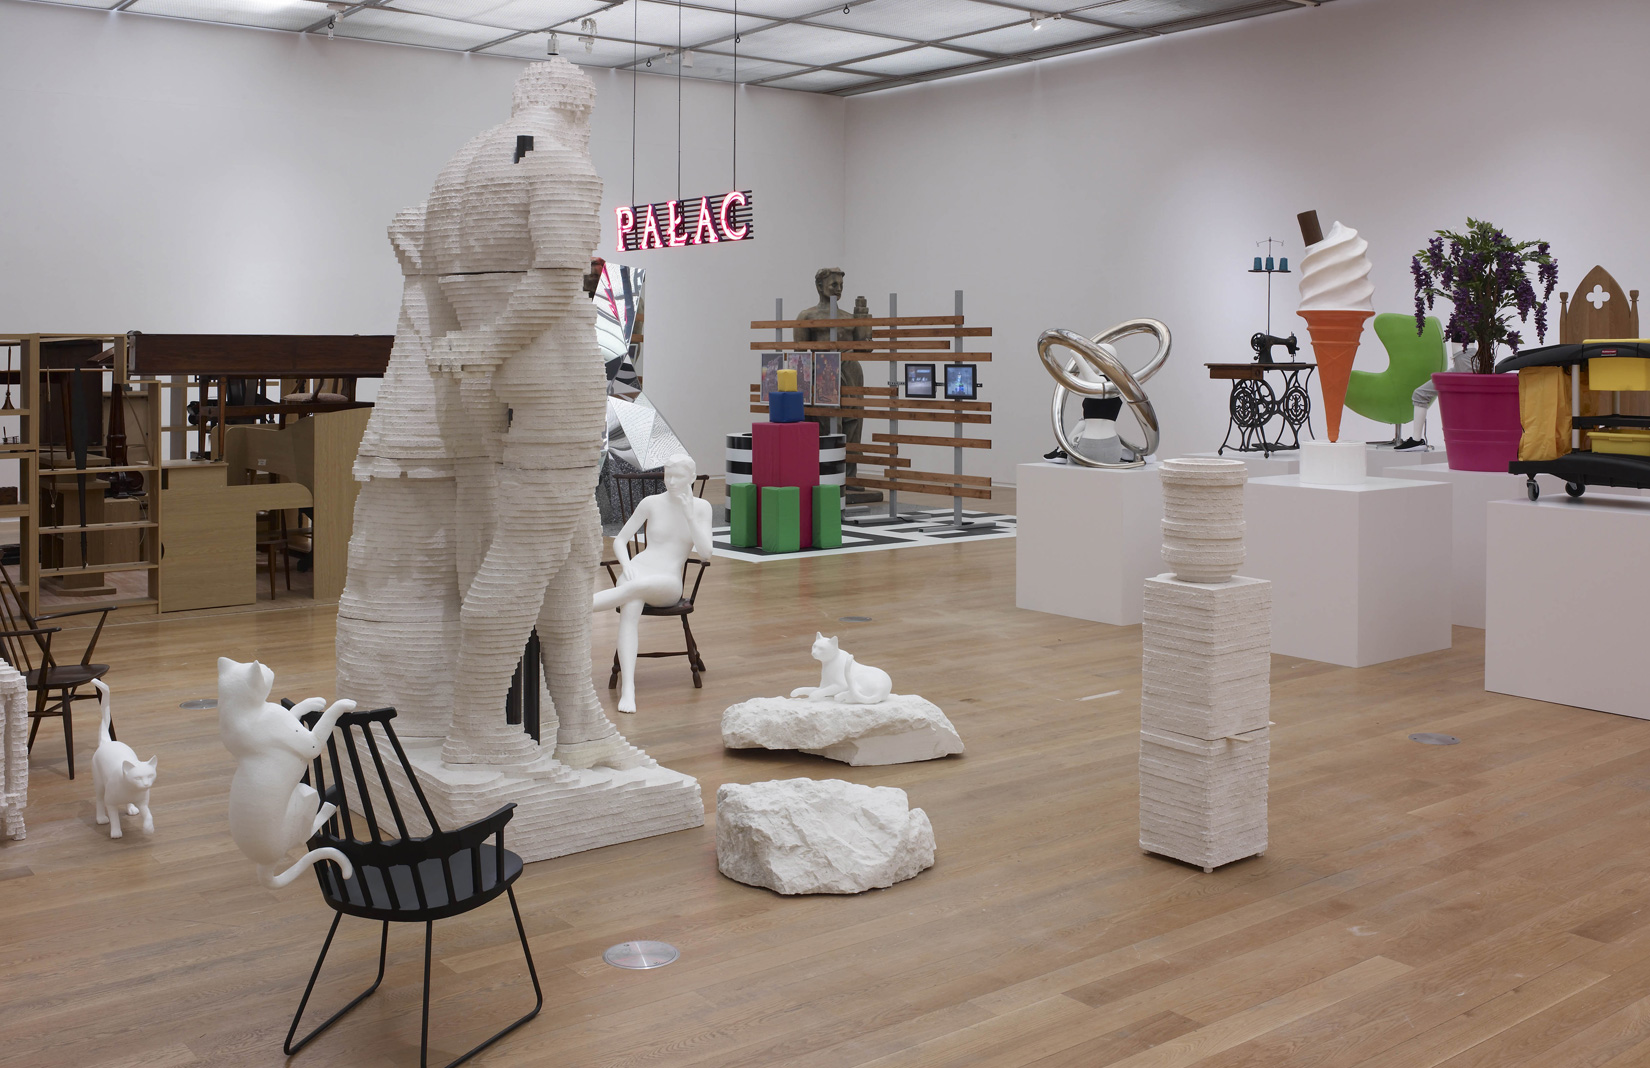 Installation view of Matthew Darbyshire's An Exhibition for Modern Living at Manchester Art Gallery. Photography: Michael Pollard. Courtesy of the artist and Manchester Art Gallery